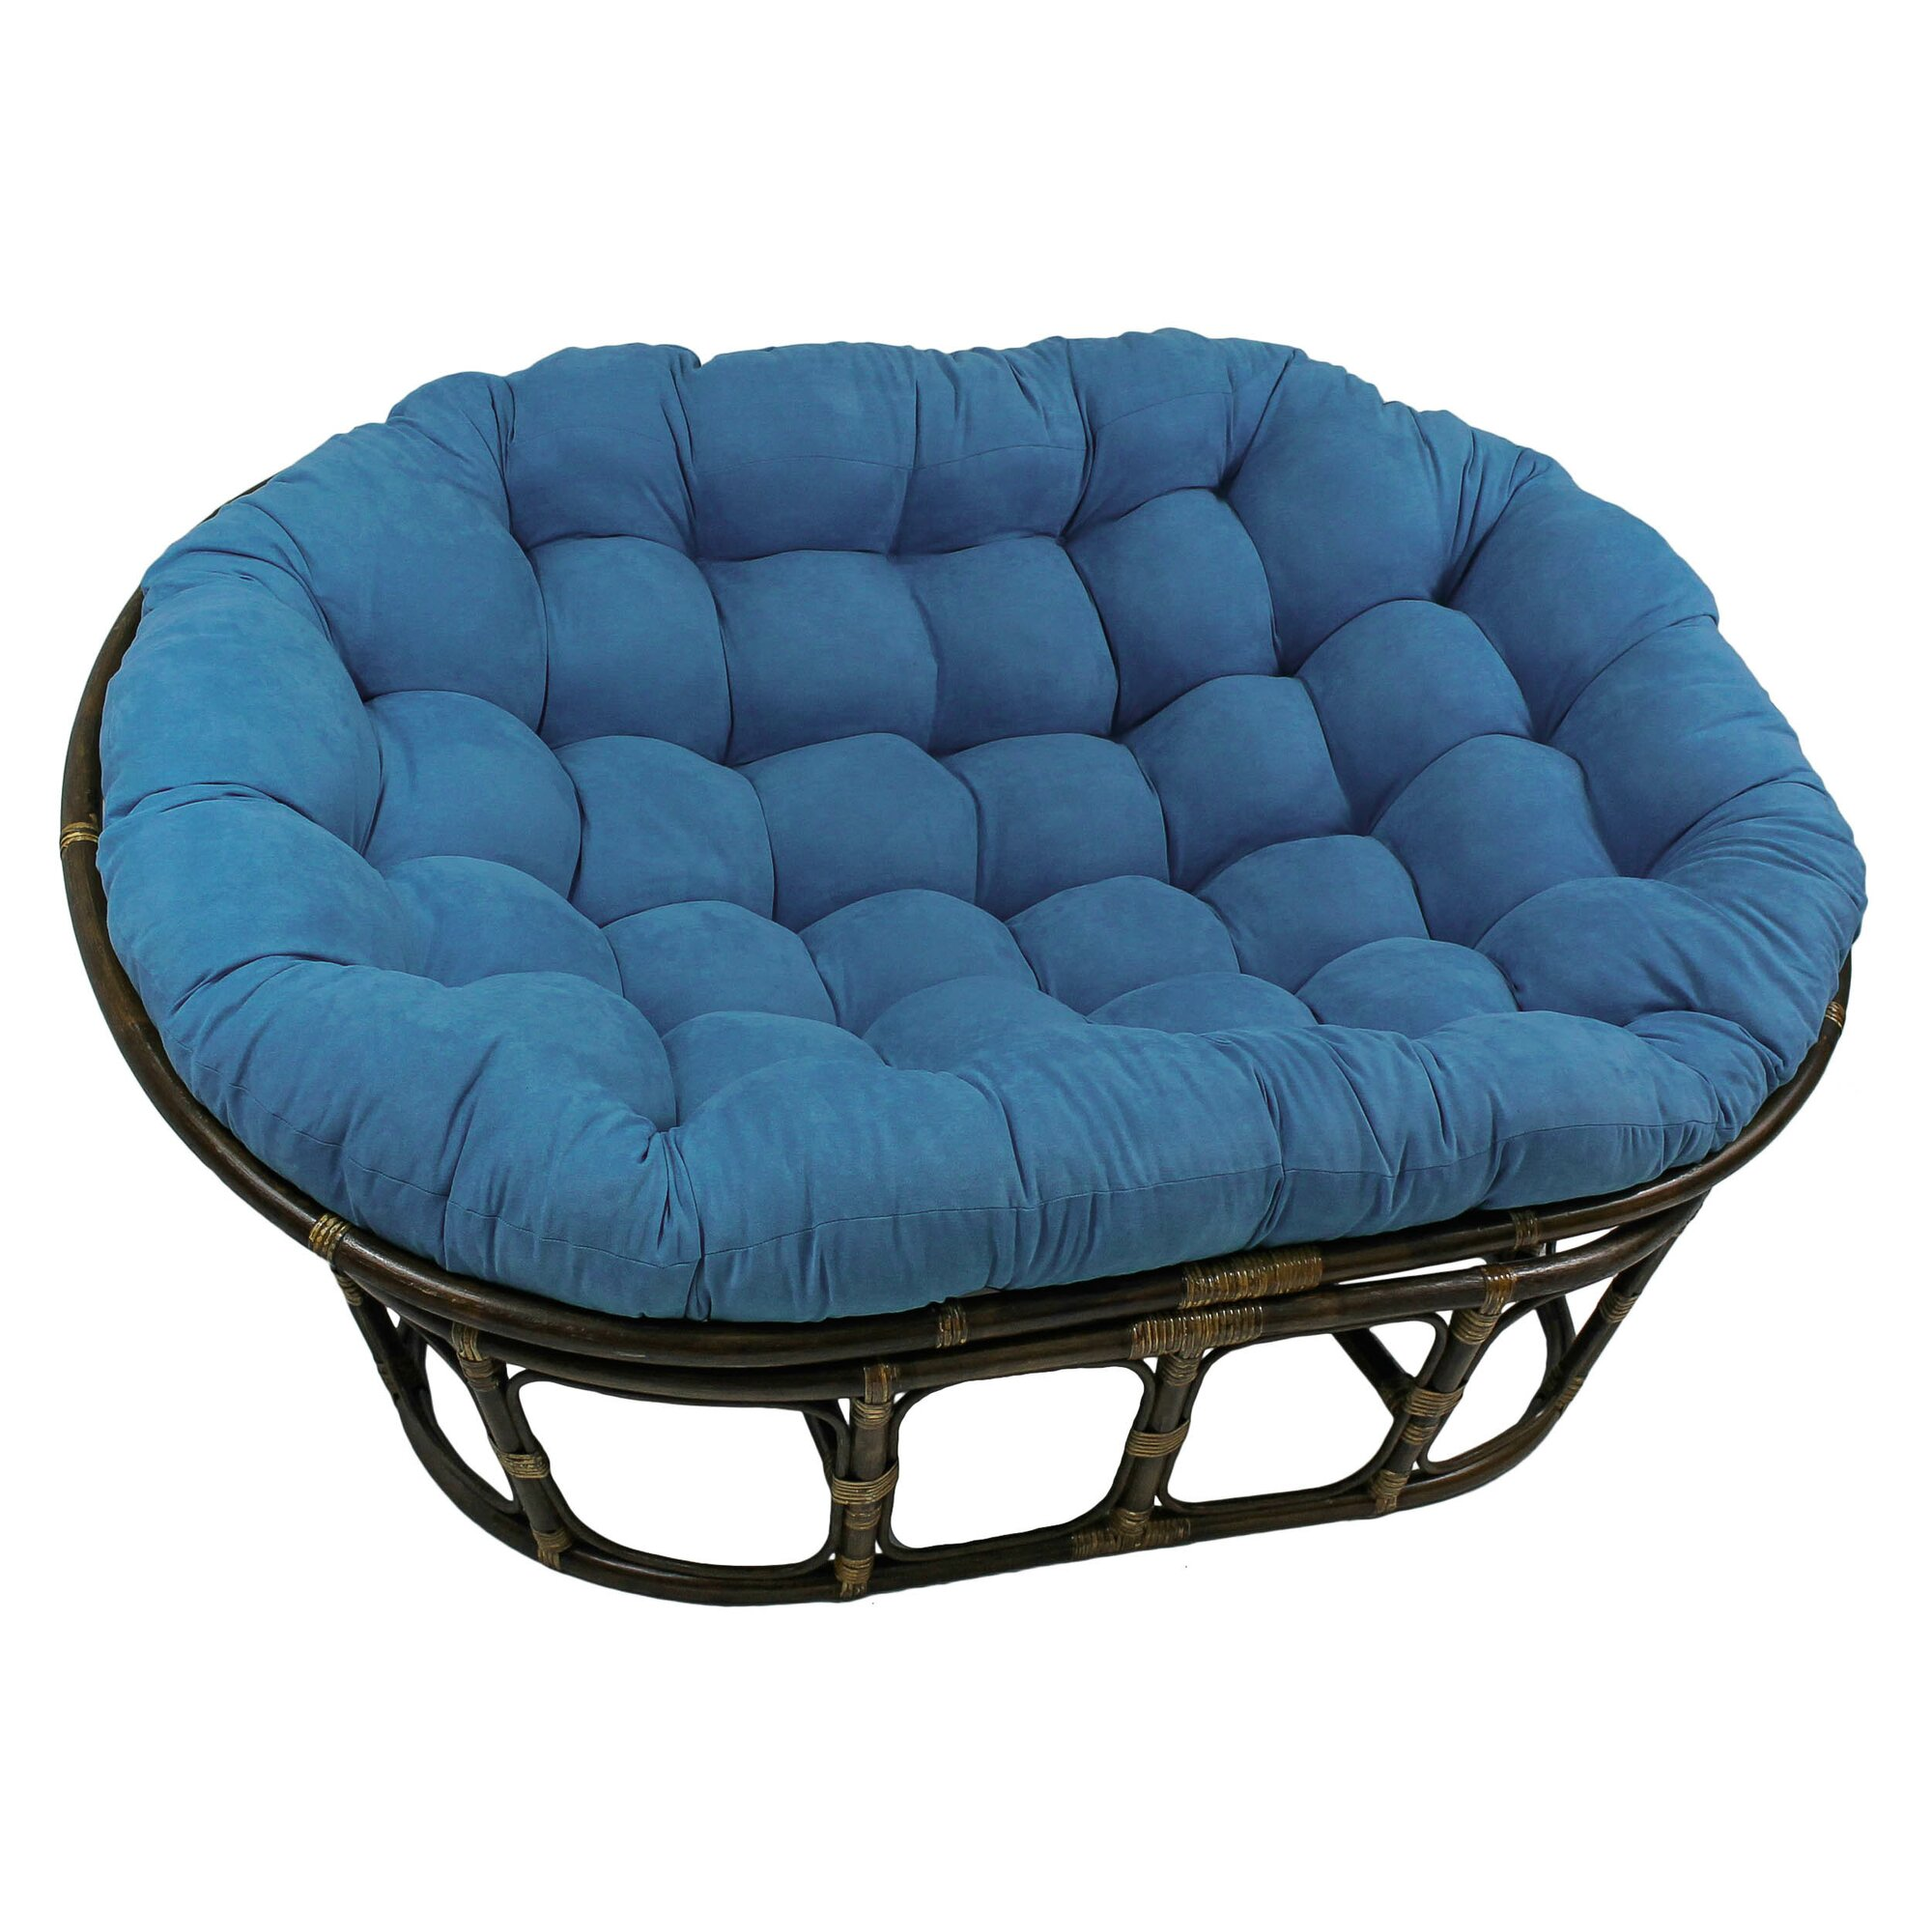 Cane chairs with cushions - Quick View Rattan Double Papasan Chair With Micro Suede Cushion